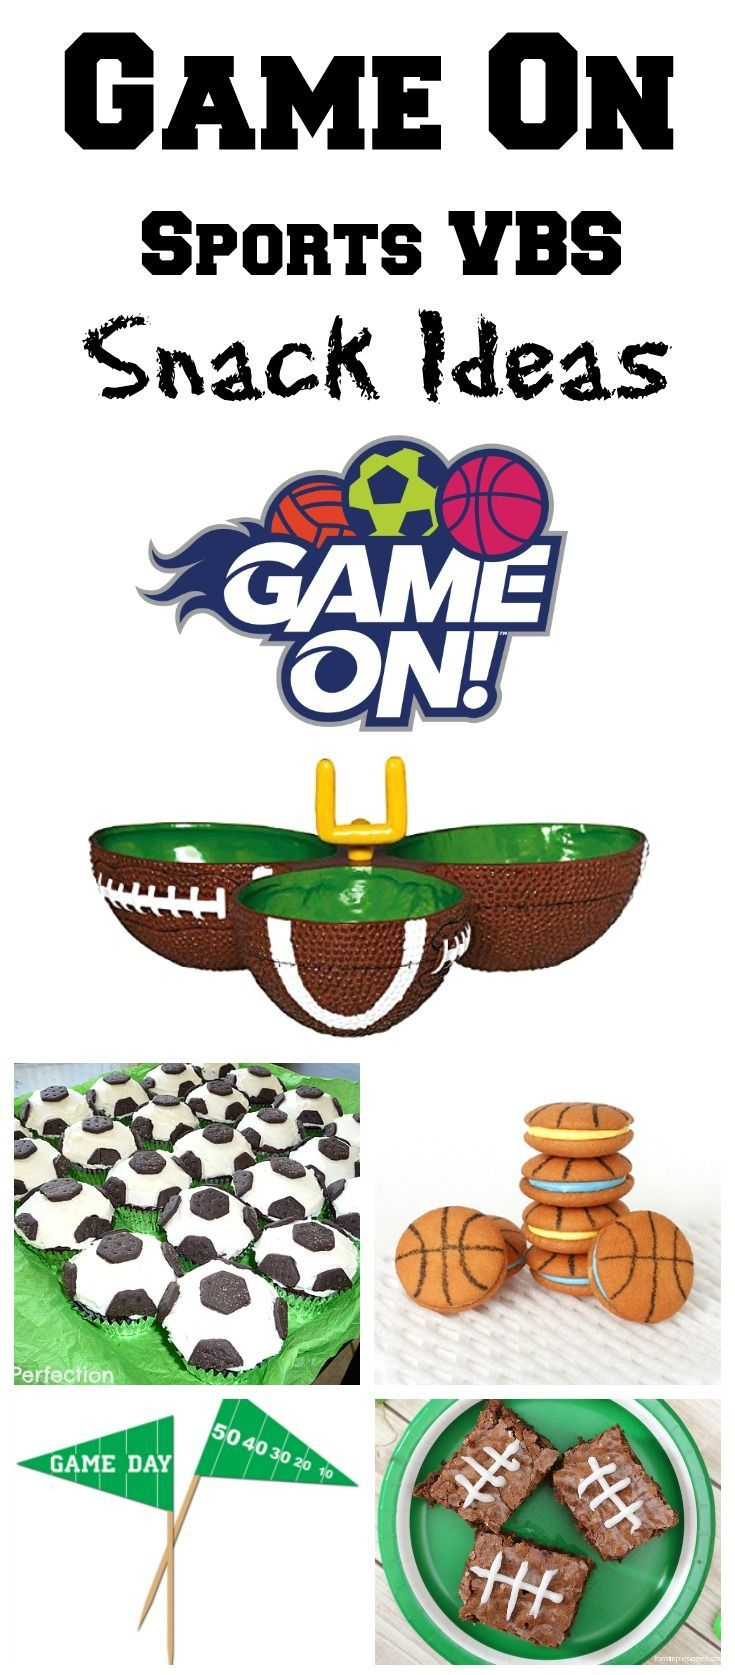 Sport Snack Ideas: Game On VBS.